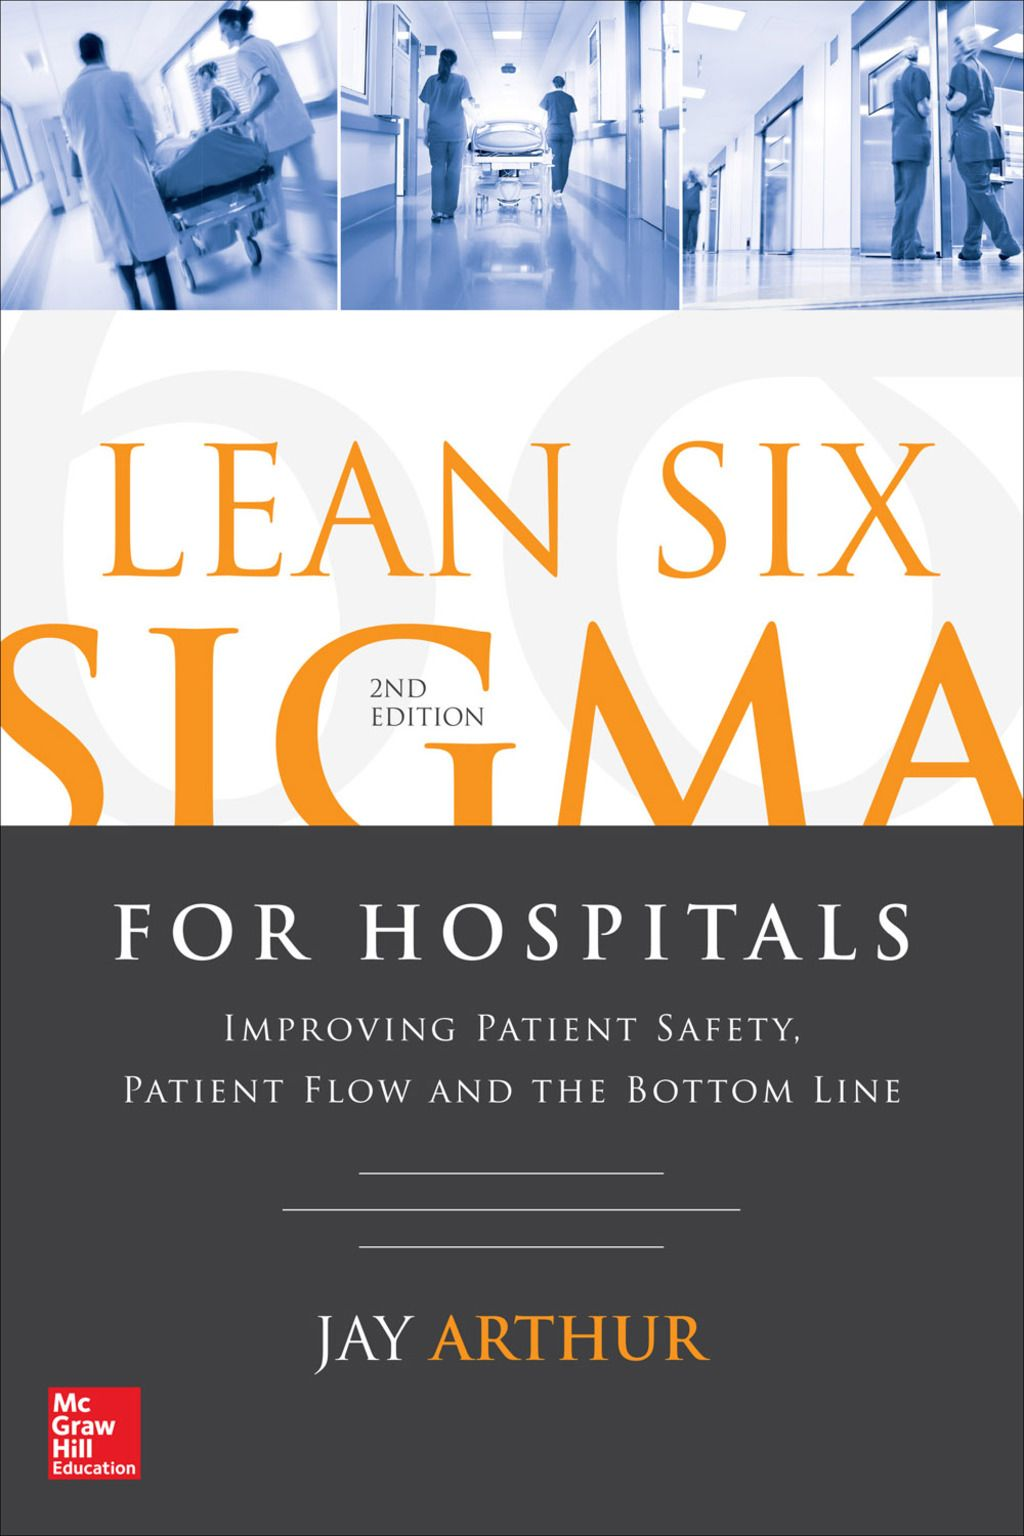 Lean Six Sigma For Hospitals Improving Patient Safety Patient Flow And The Bottom Line Second Edition Ebook Patient Safety Lean Six Sigma Patient